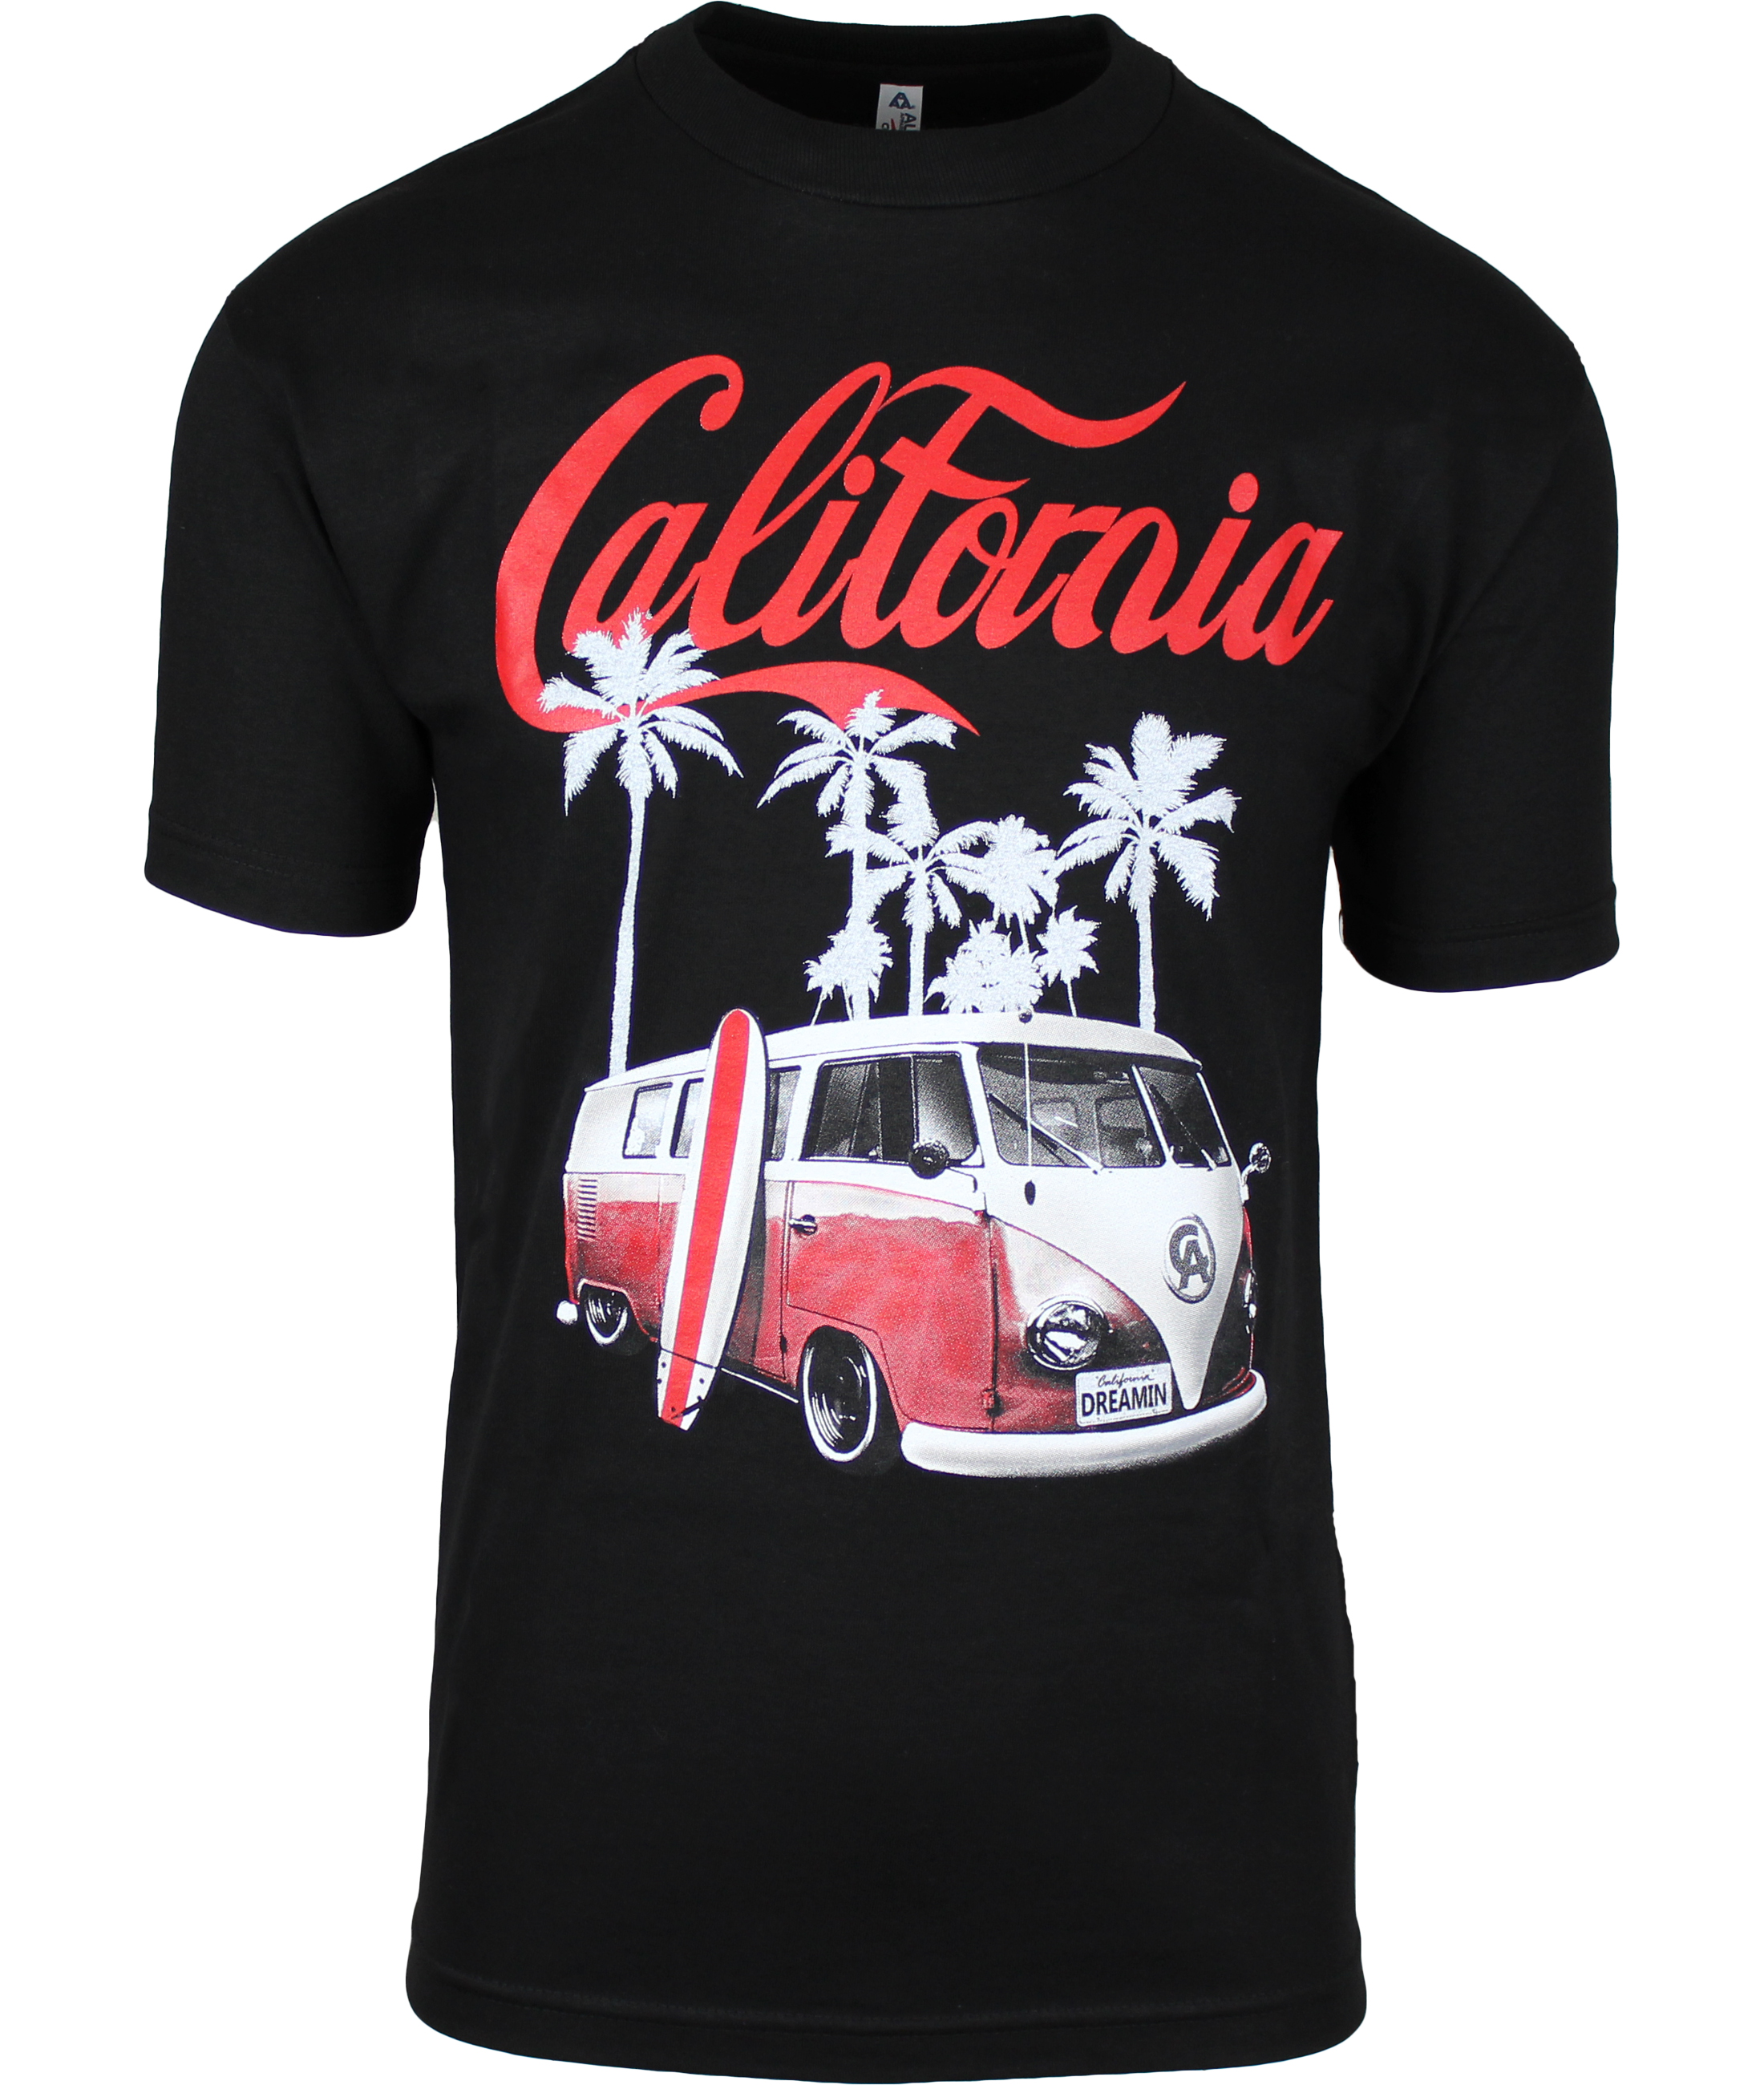 california dreaming beach van and surfboard mens t shirt ebay. Black Bedroom Furniture Sets. Home Design Ideas